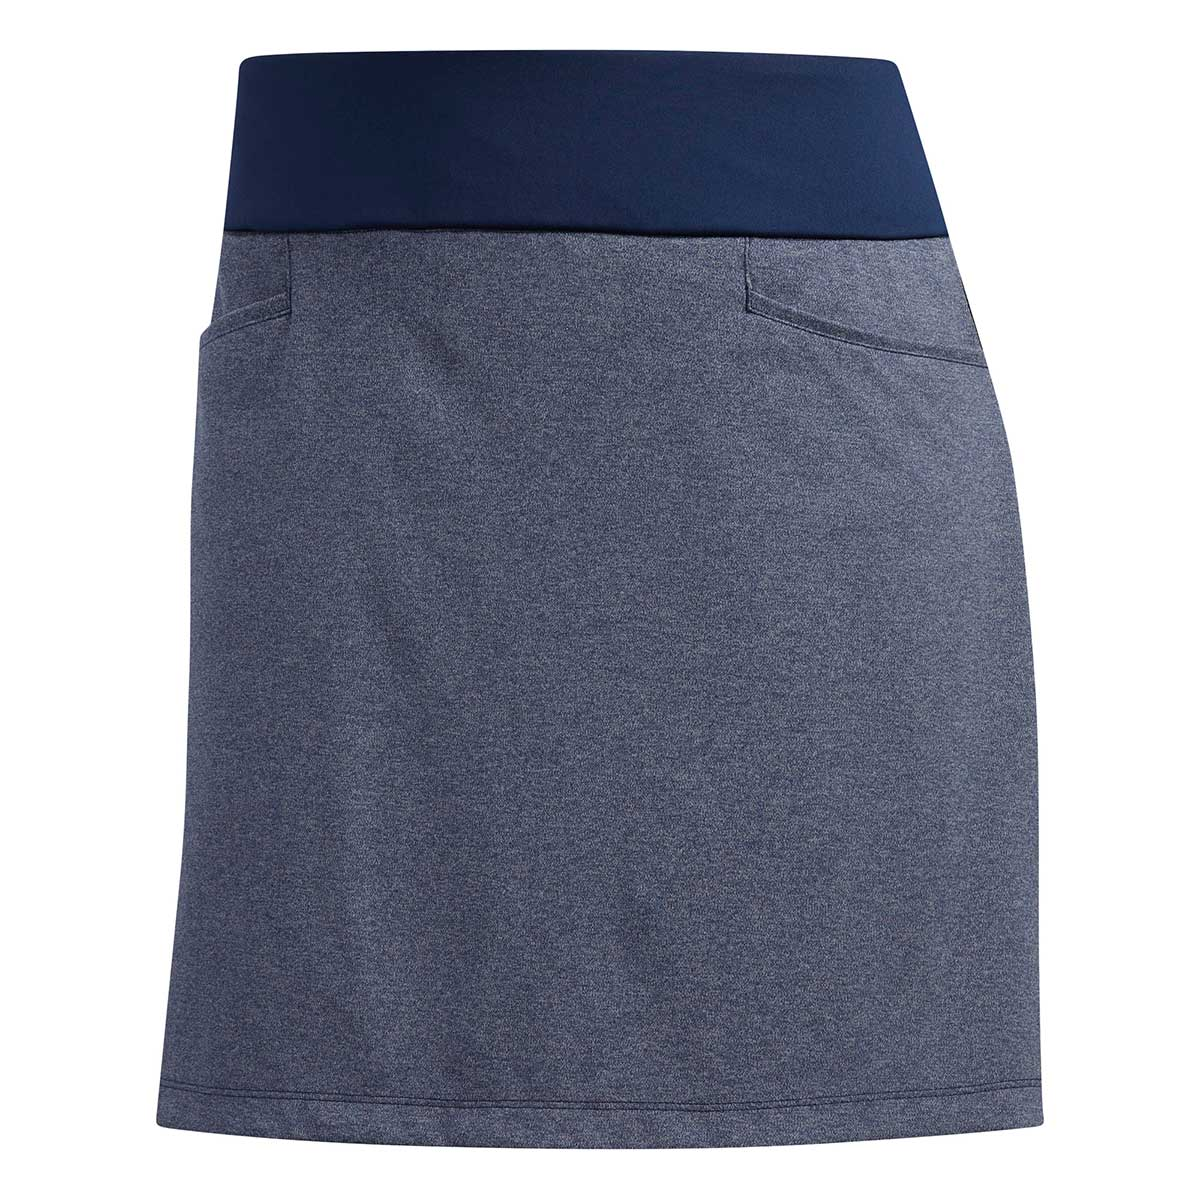 Adidas Women's Heather Indigo Golf Skort